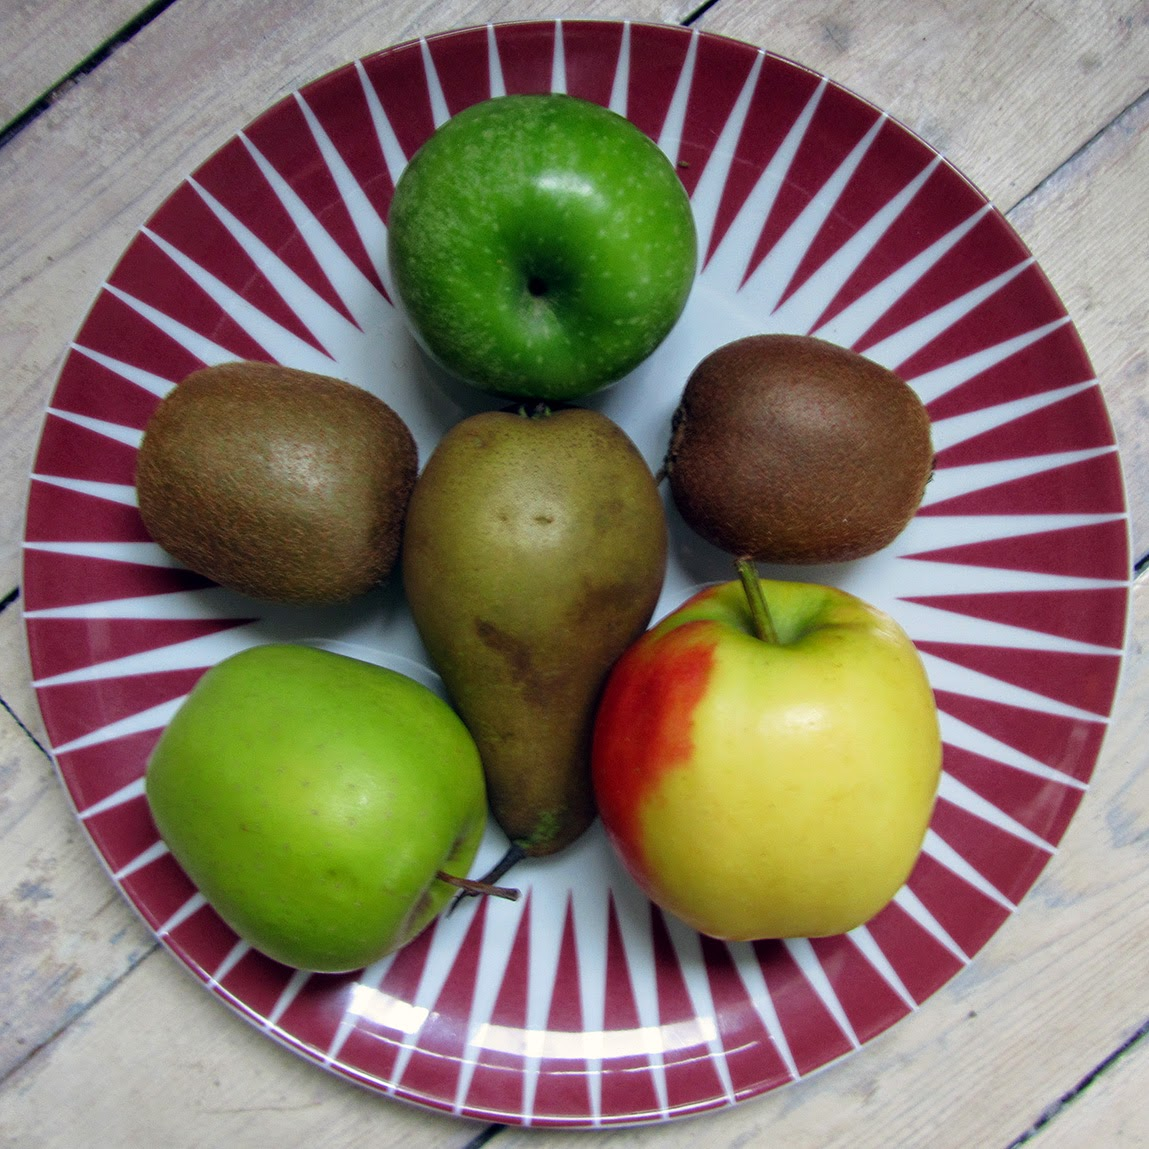 fruit on an Ikea Bråkig plate